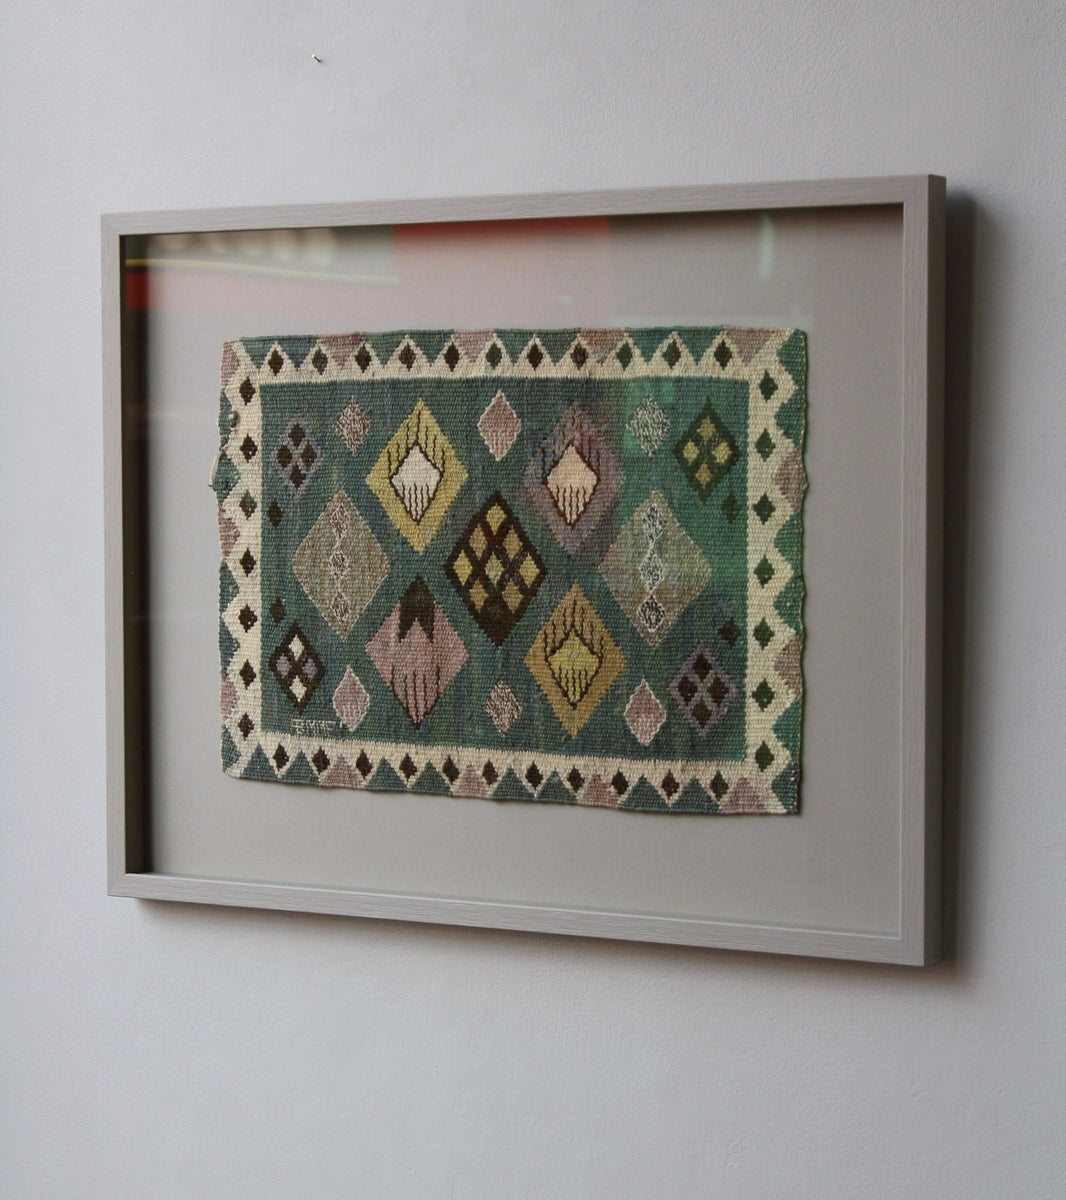 Tapestries scandinavia denmark norway sweden mid century modern made to last